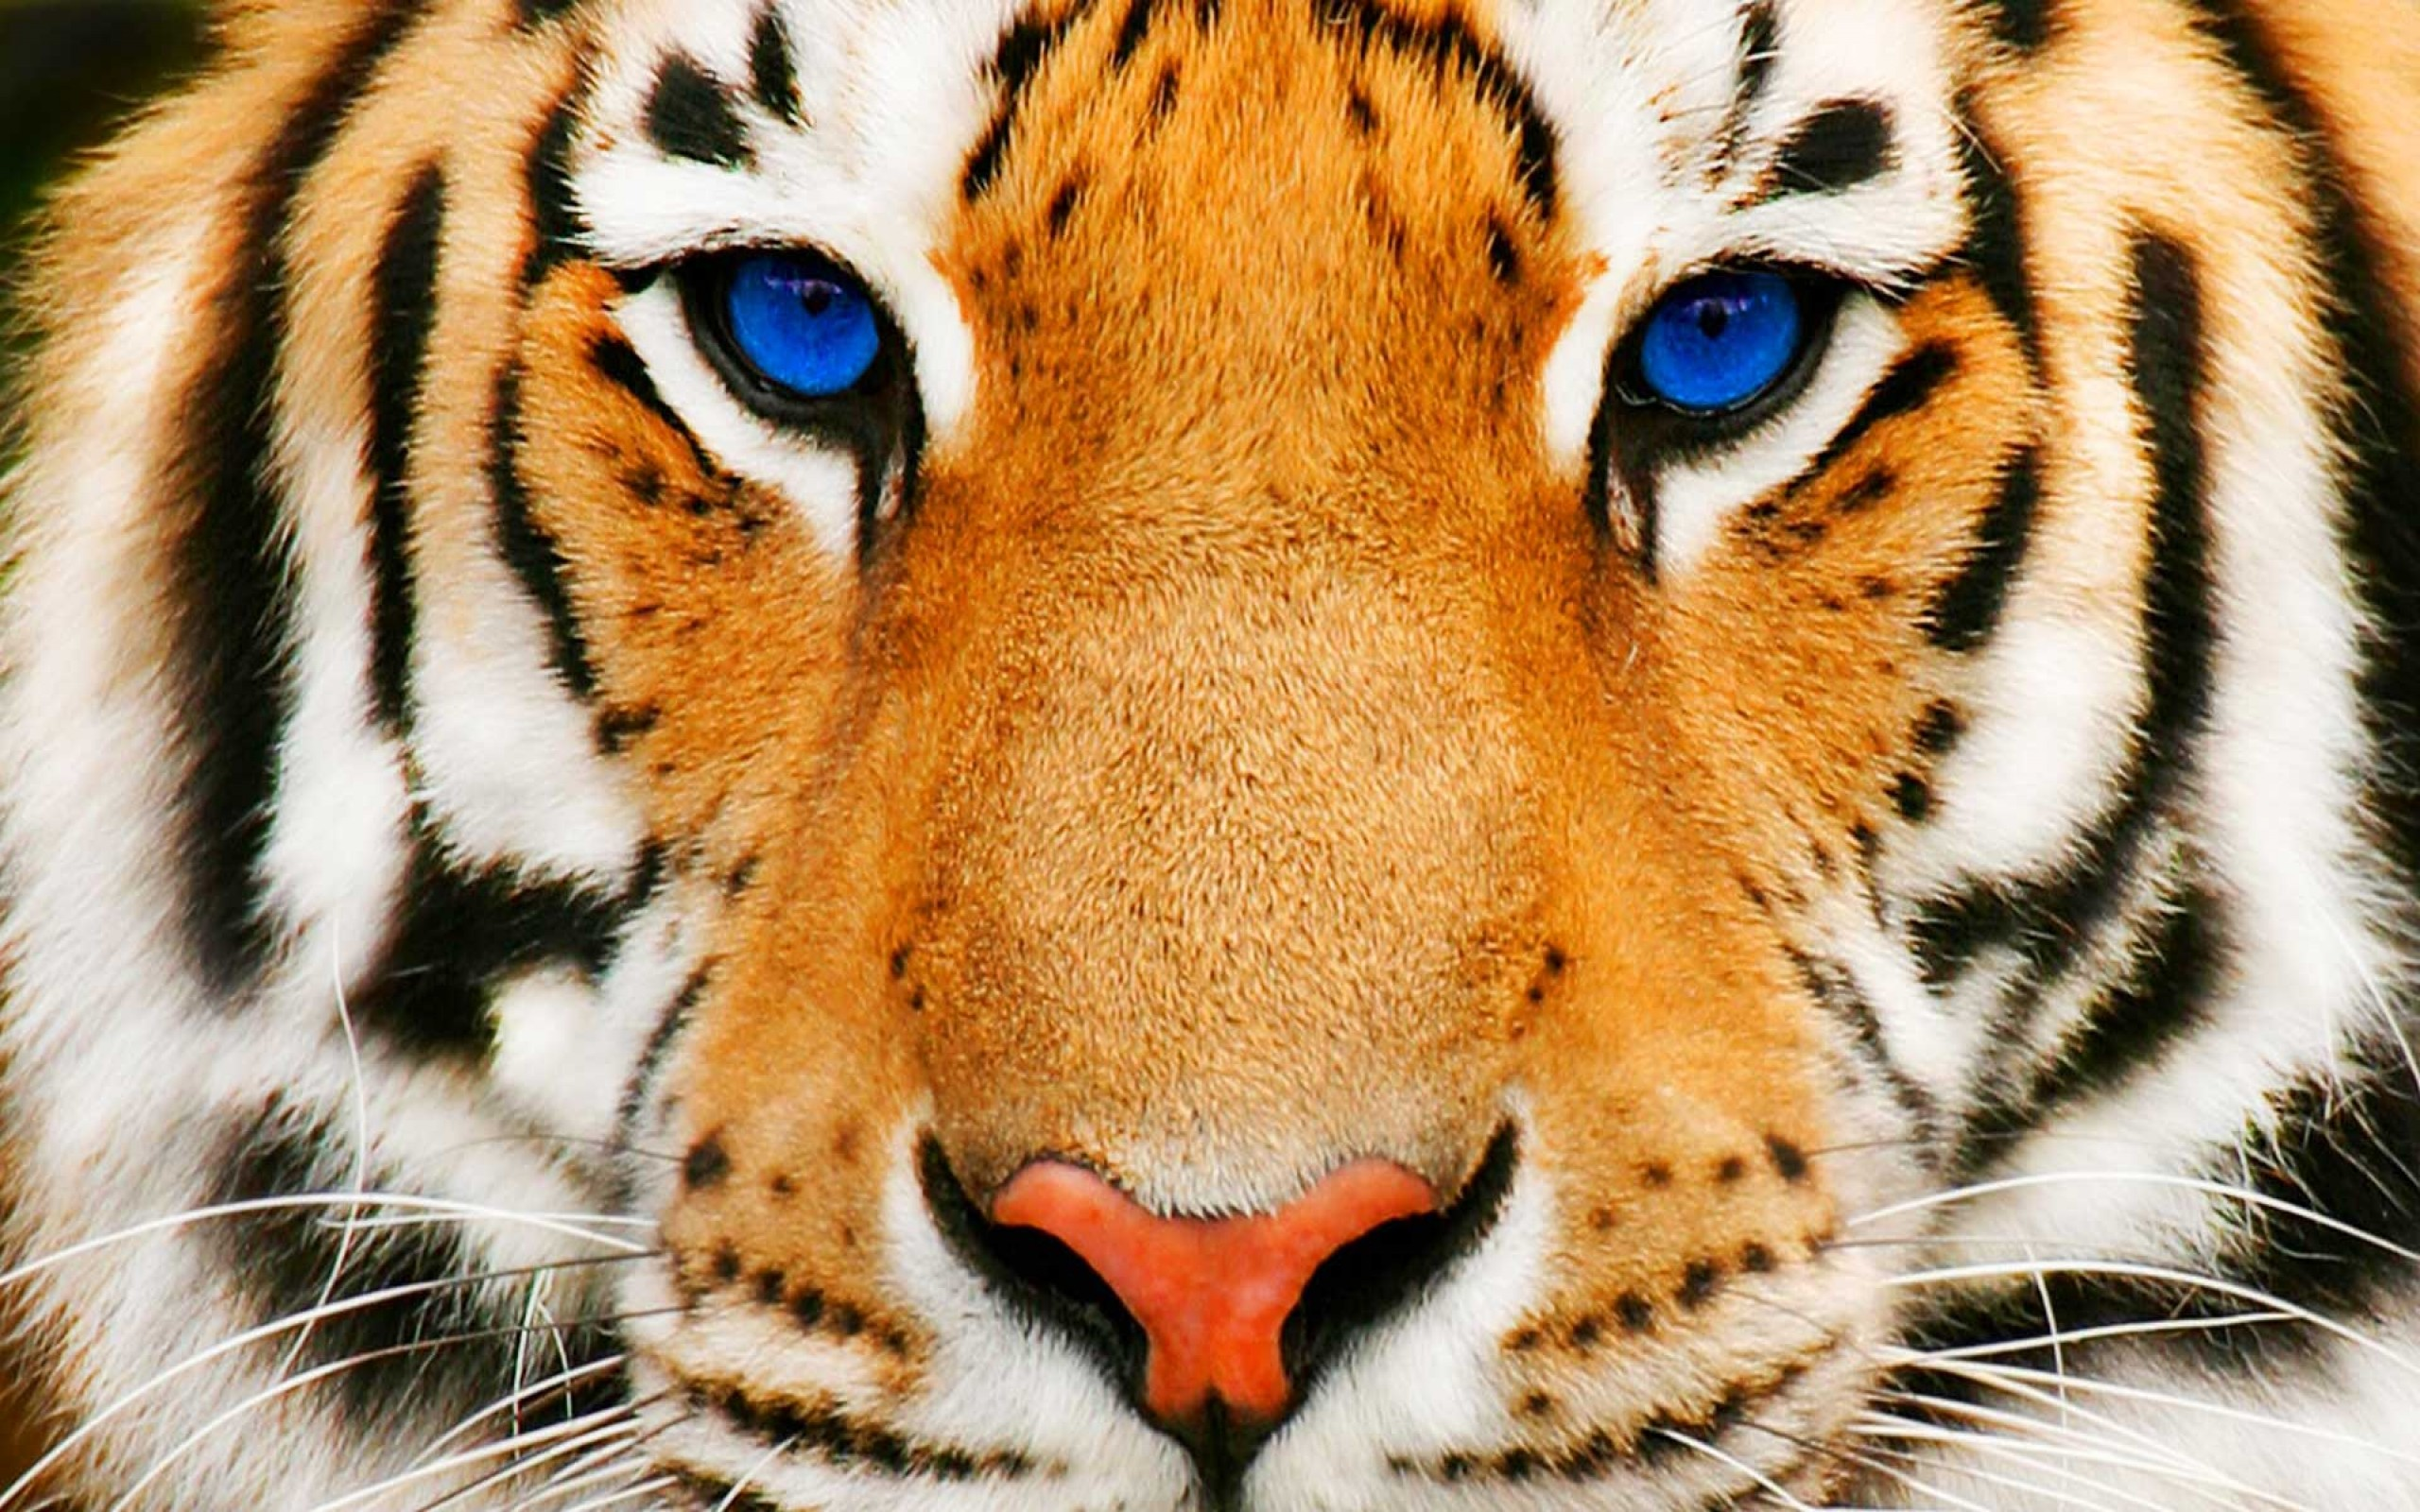 eye of the tiger wallpaper - hd desktop wallpapers | 4k hd